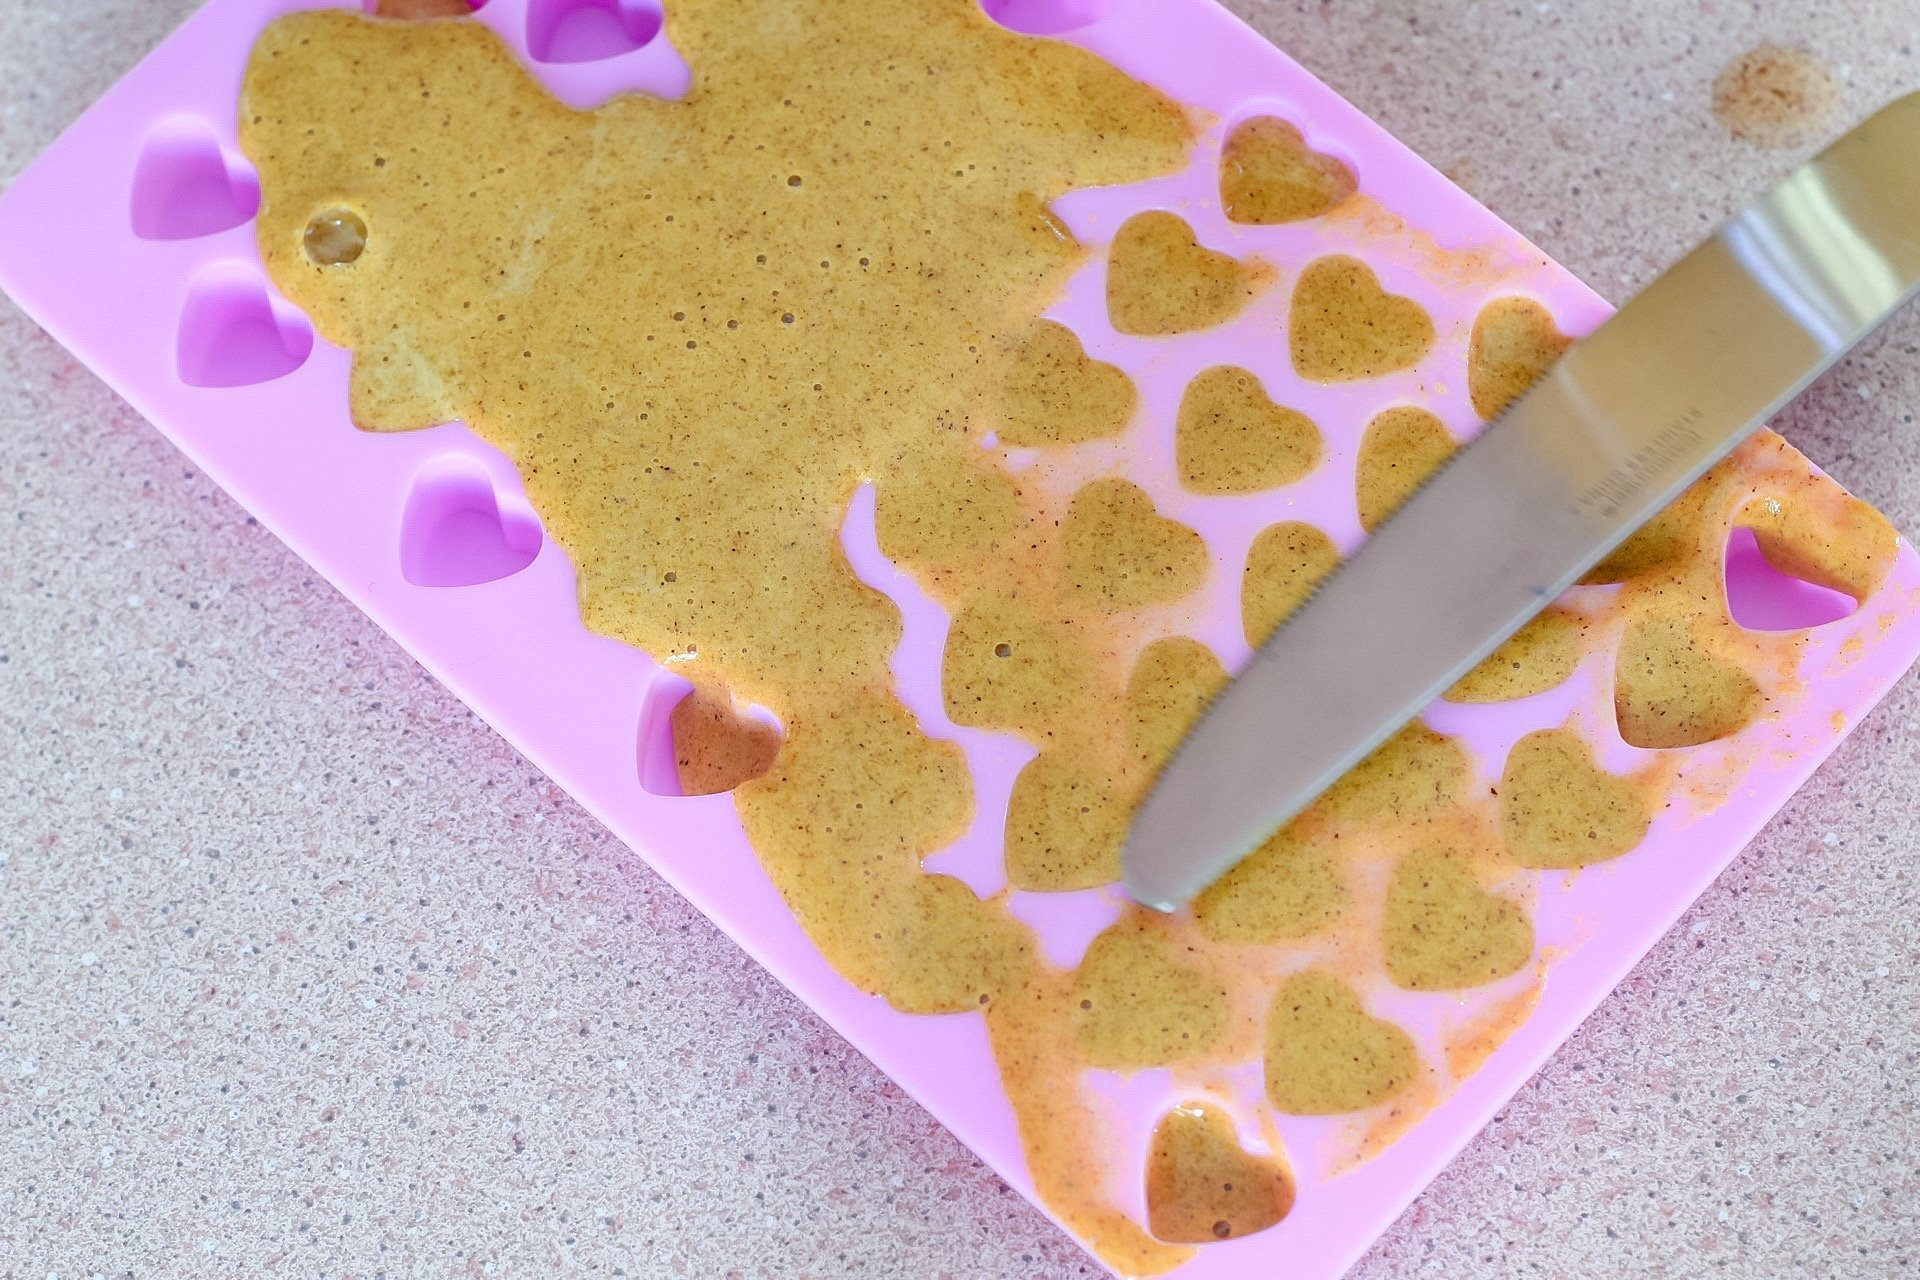 Smoothing homemade gummy mixture into silicone molds